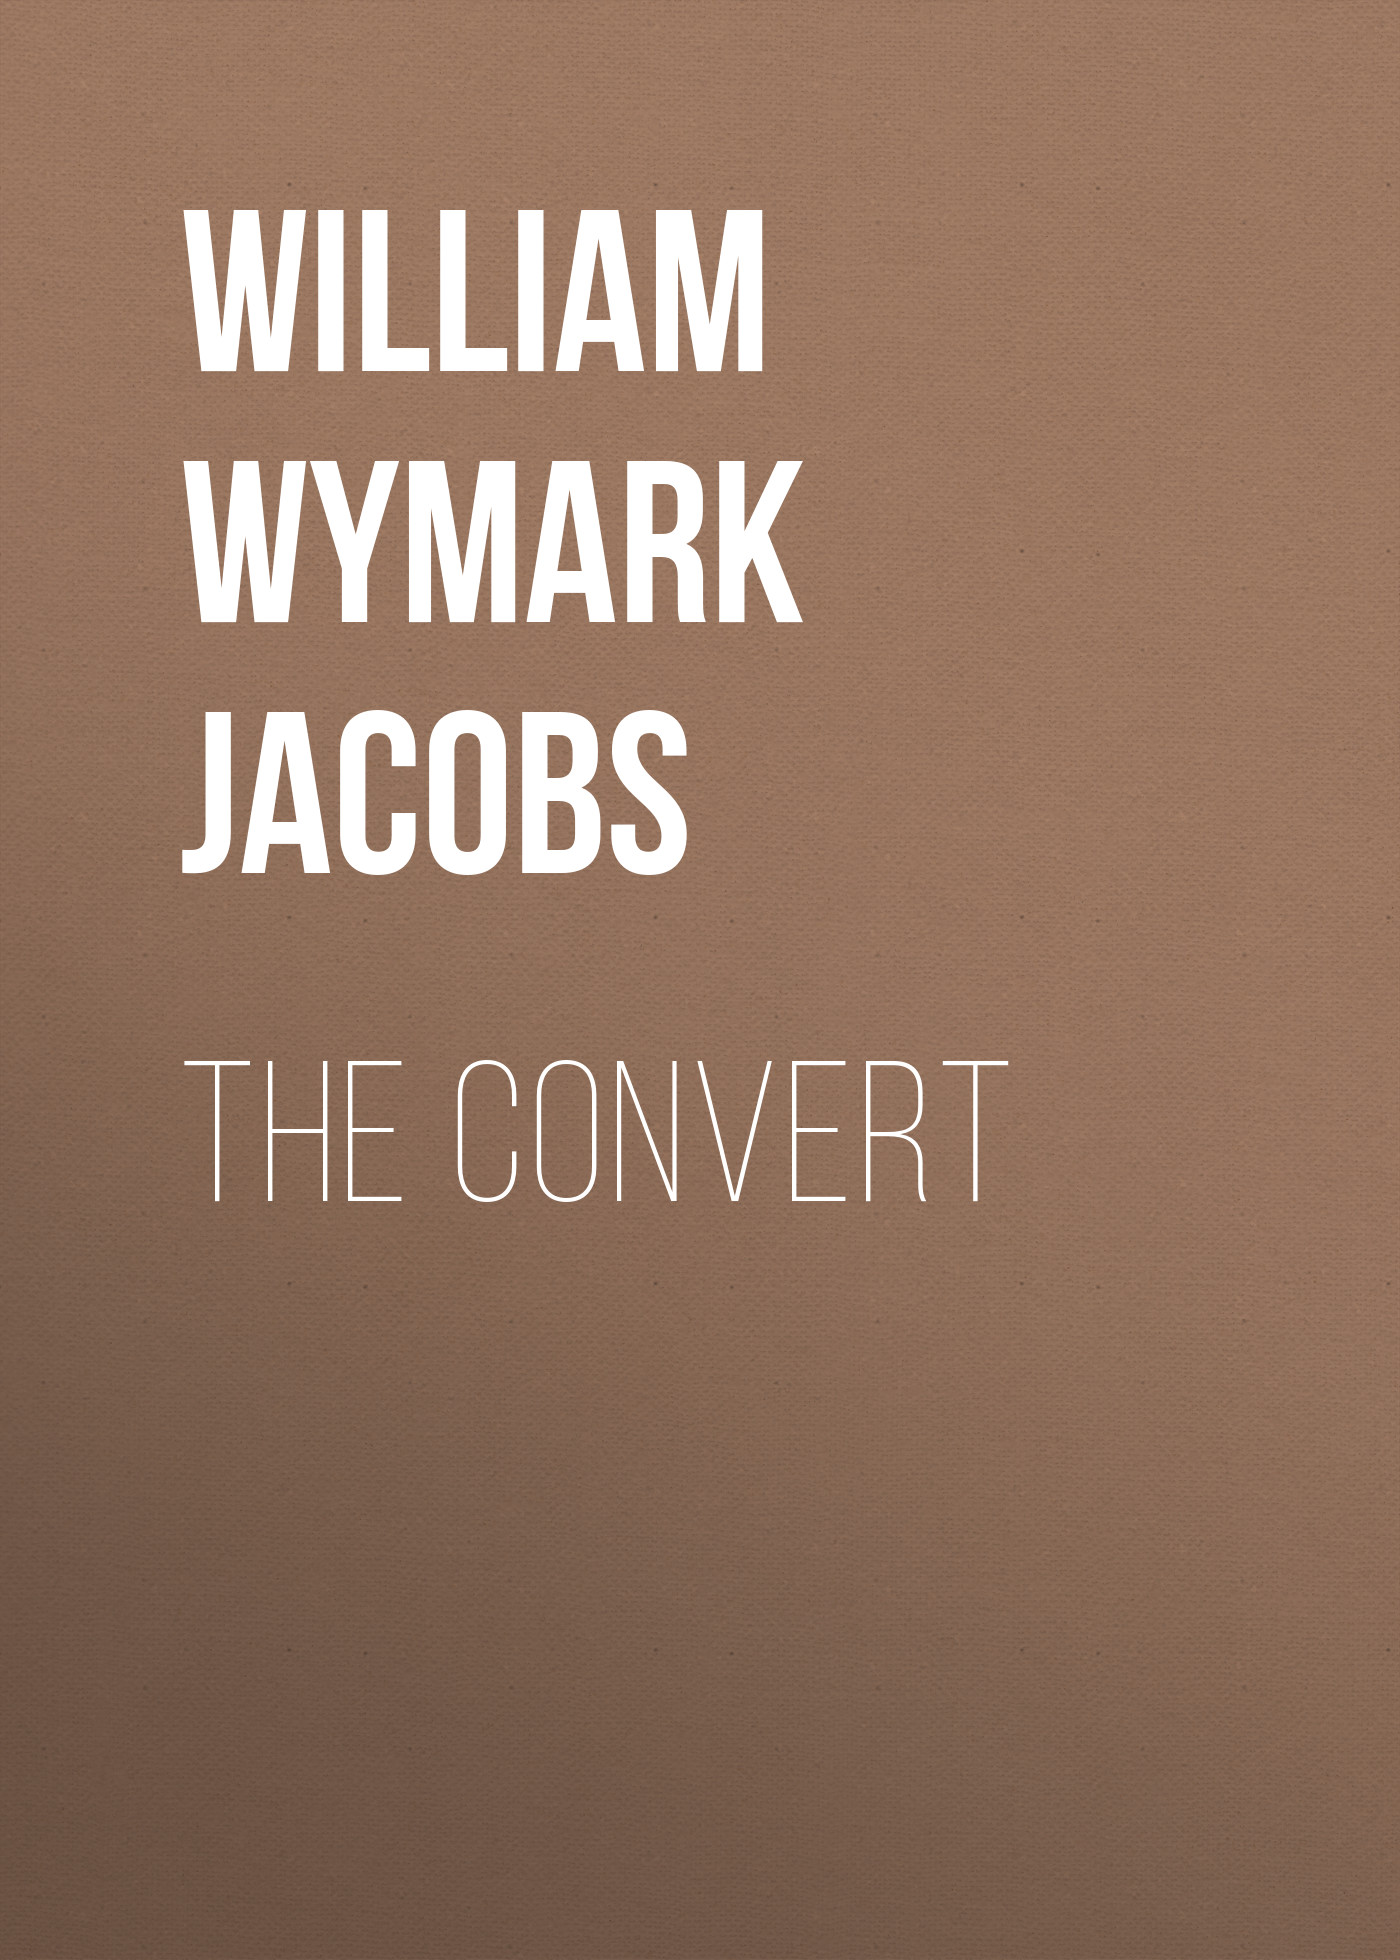 лучшая цена William Wymark Jacobs The Convert